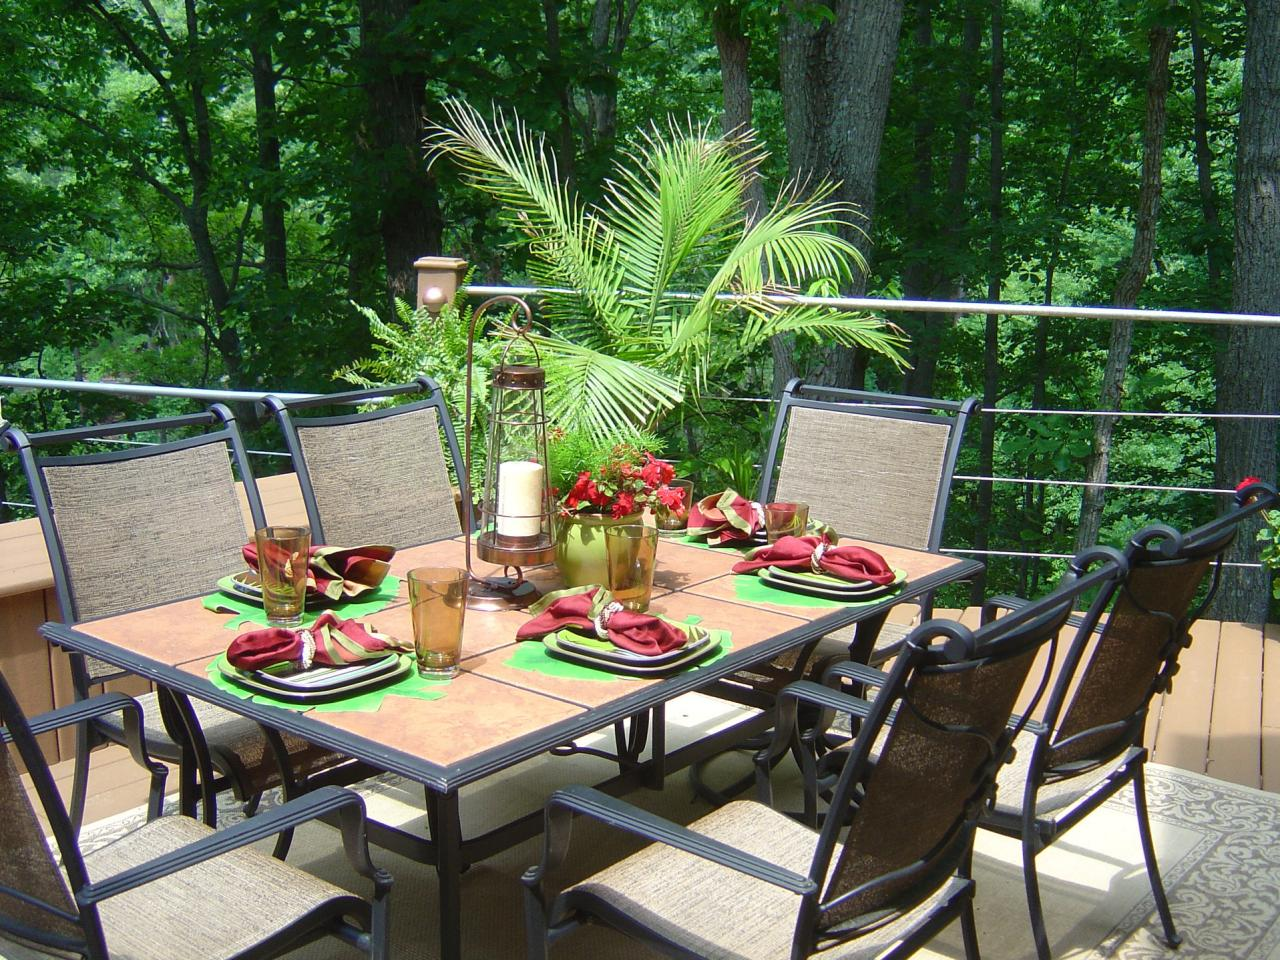 Outdoor entertaining tips for summer hgtv for Patio table centerpiece ideas